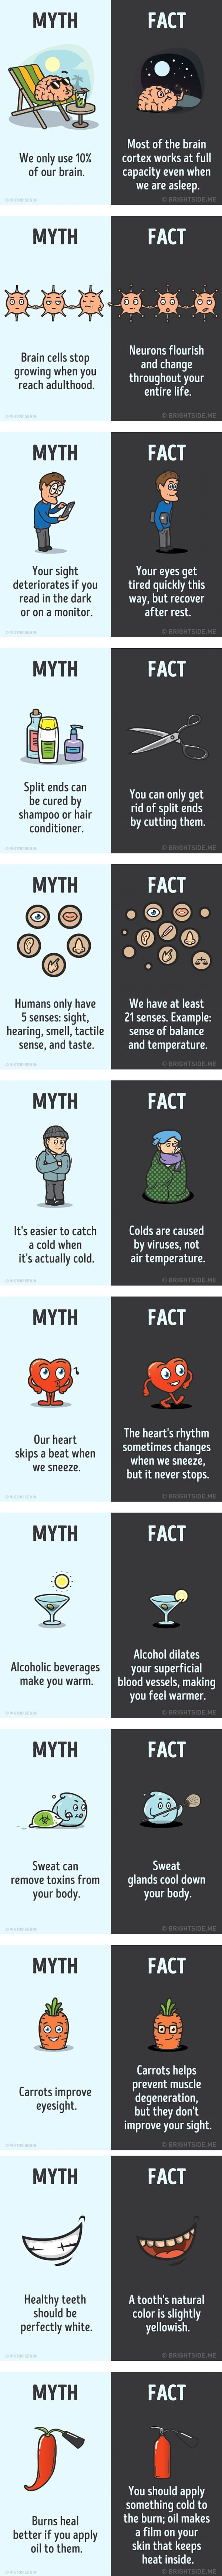 Myths about the human body